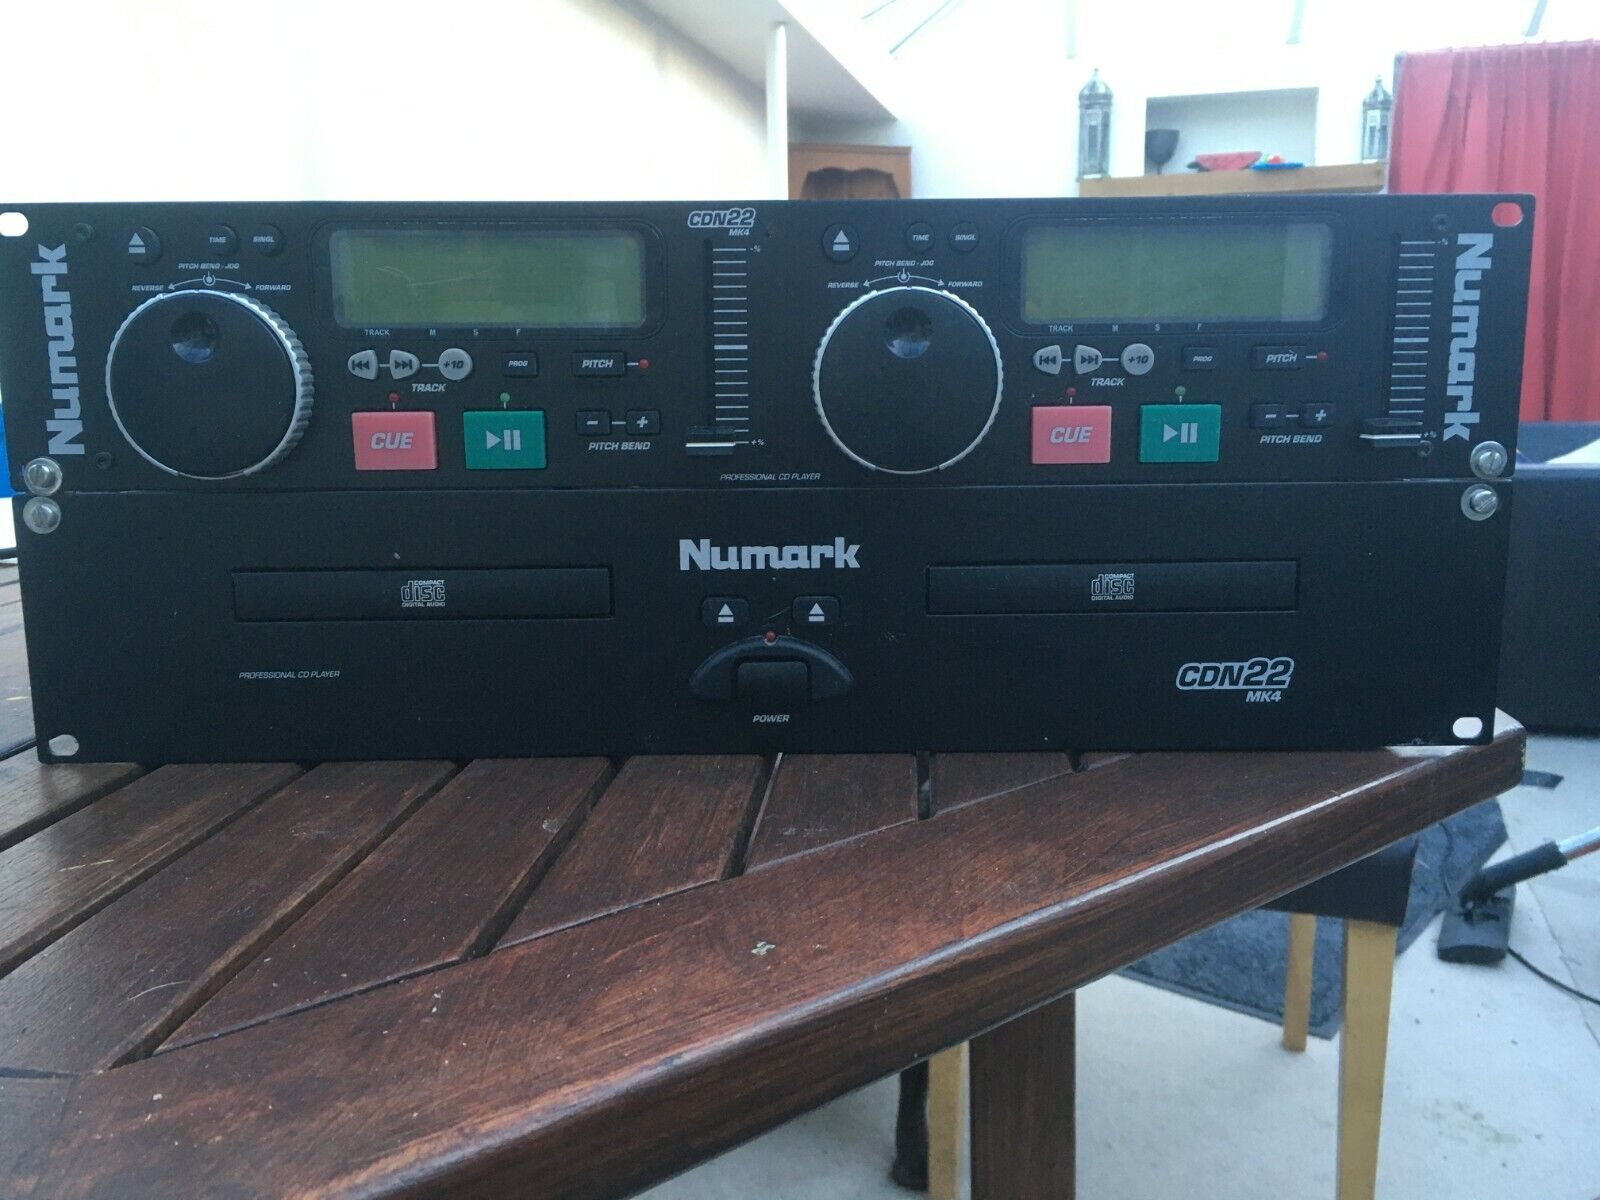 NUMARK CDN22 MK4 PRO DUAL TWIN CD PLAYER IV For DJ's